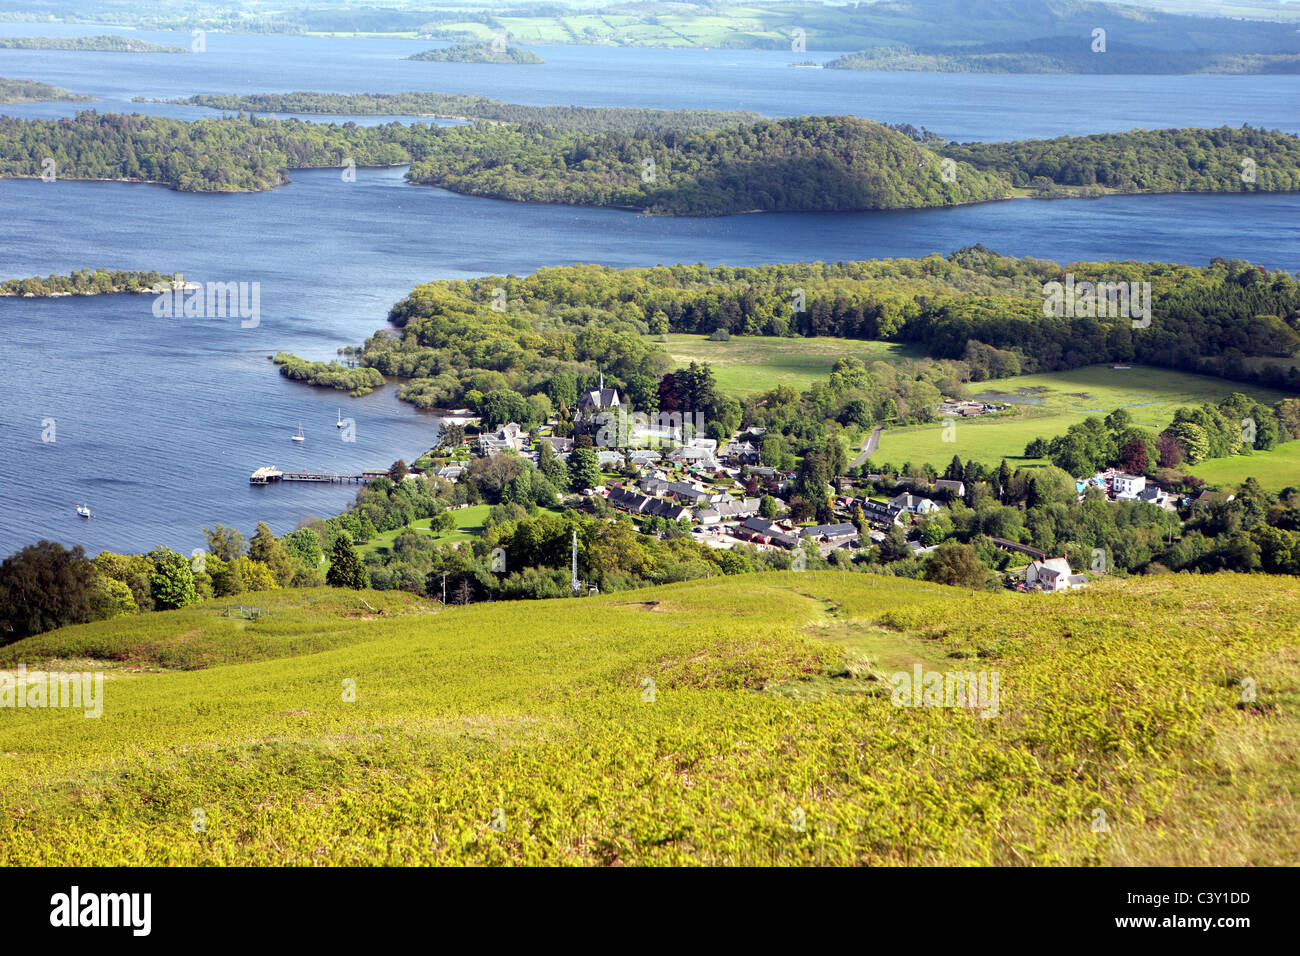 Loch Lomond and the village of Luss from the slopes of Beinn Dubh - Stock Image